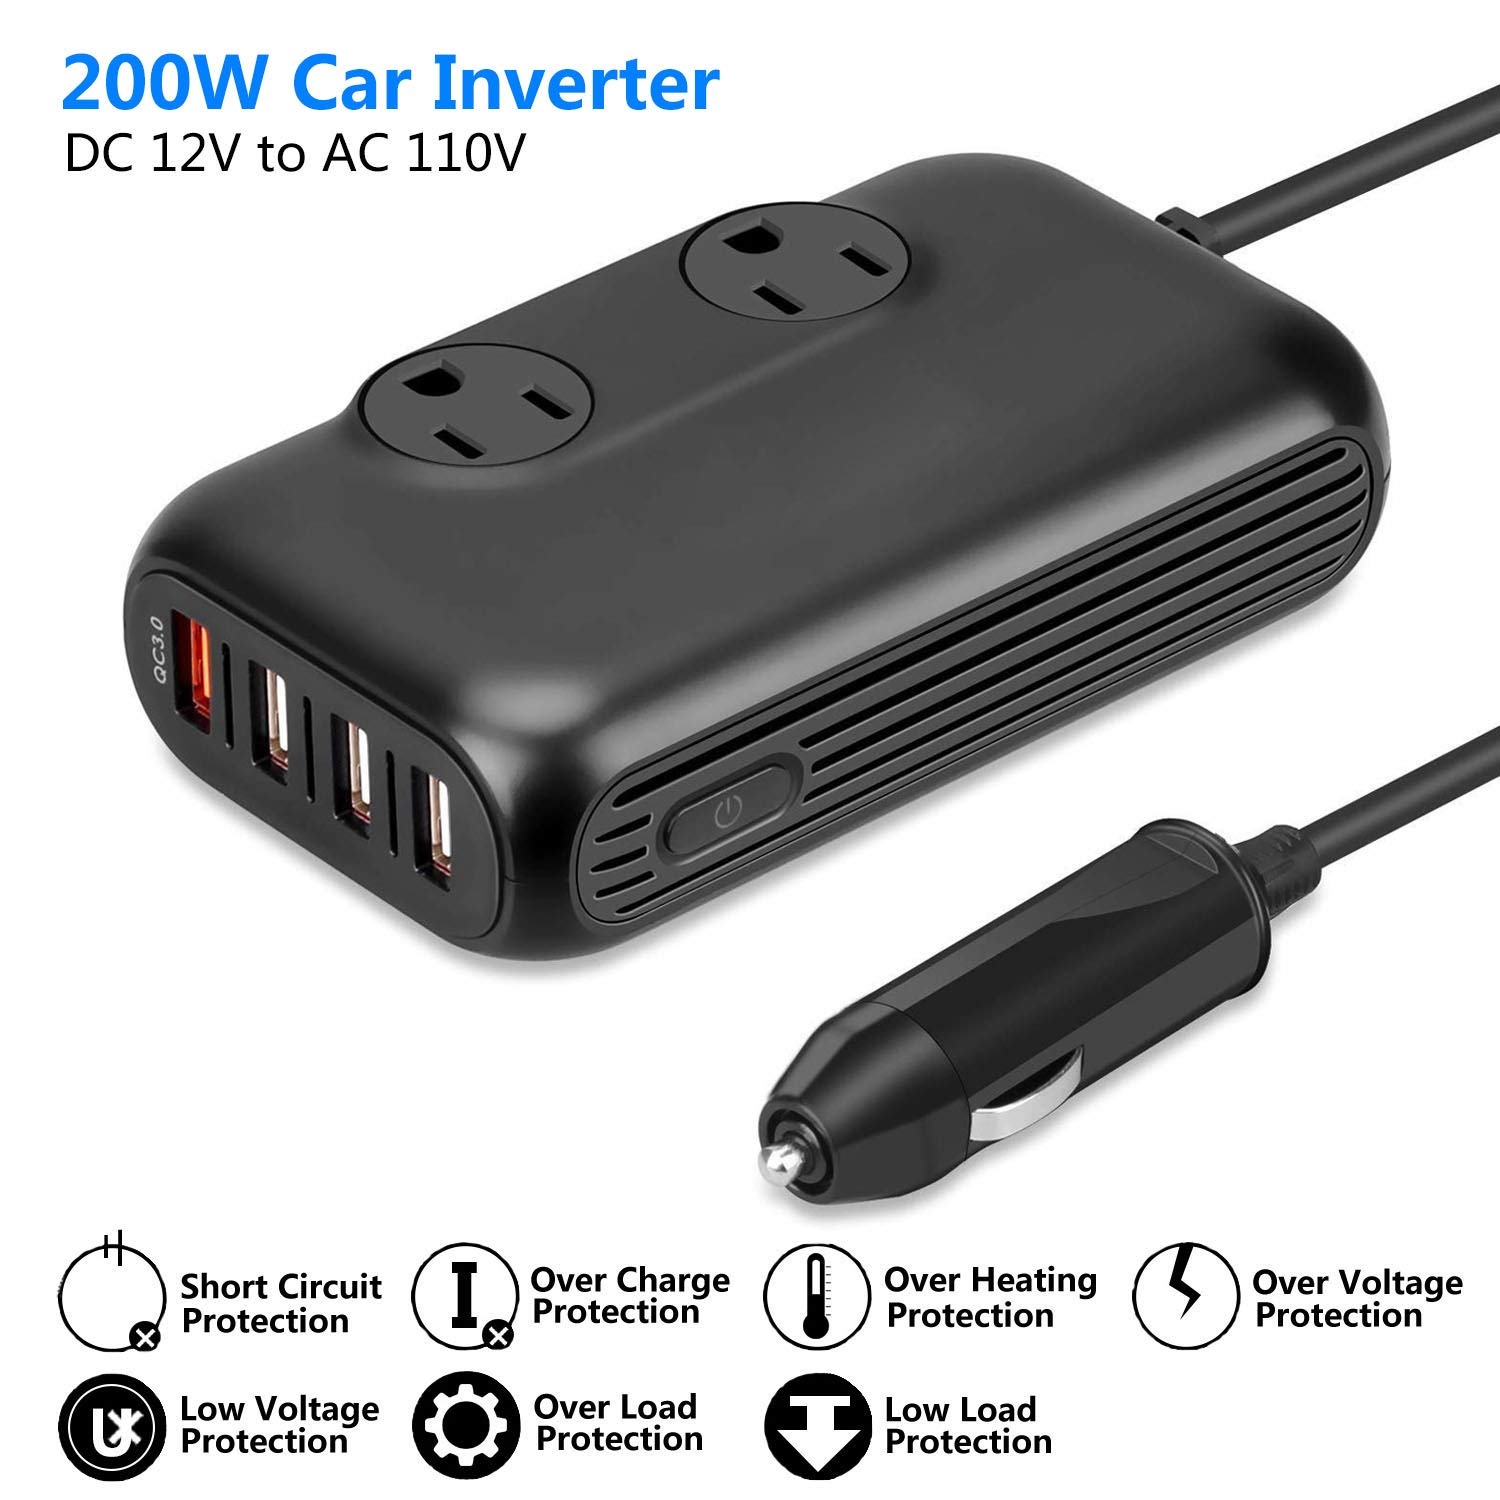 ISELECTOR 150W Car Power Inverter, DC 12V to 110V AC Converter with 2 USB Ports Charger, Thinner Design with ETL Listed Car Adapter